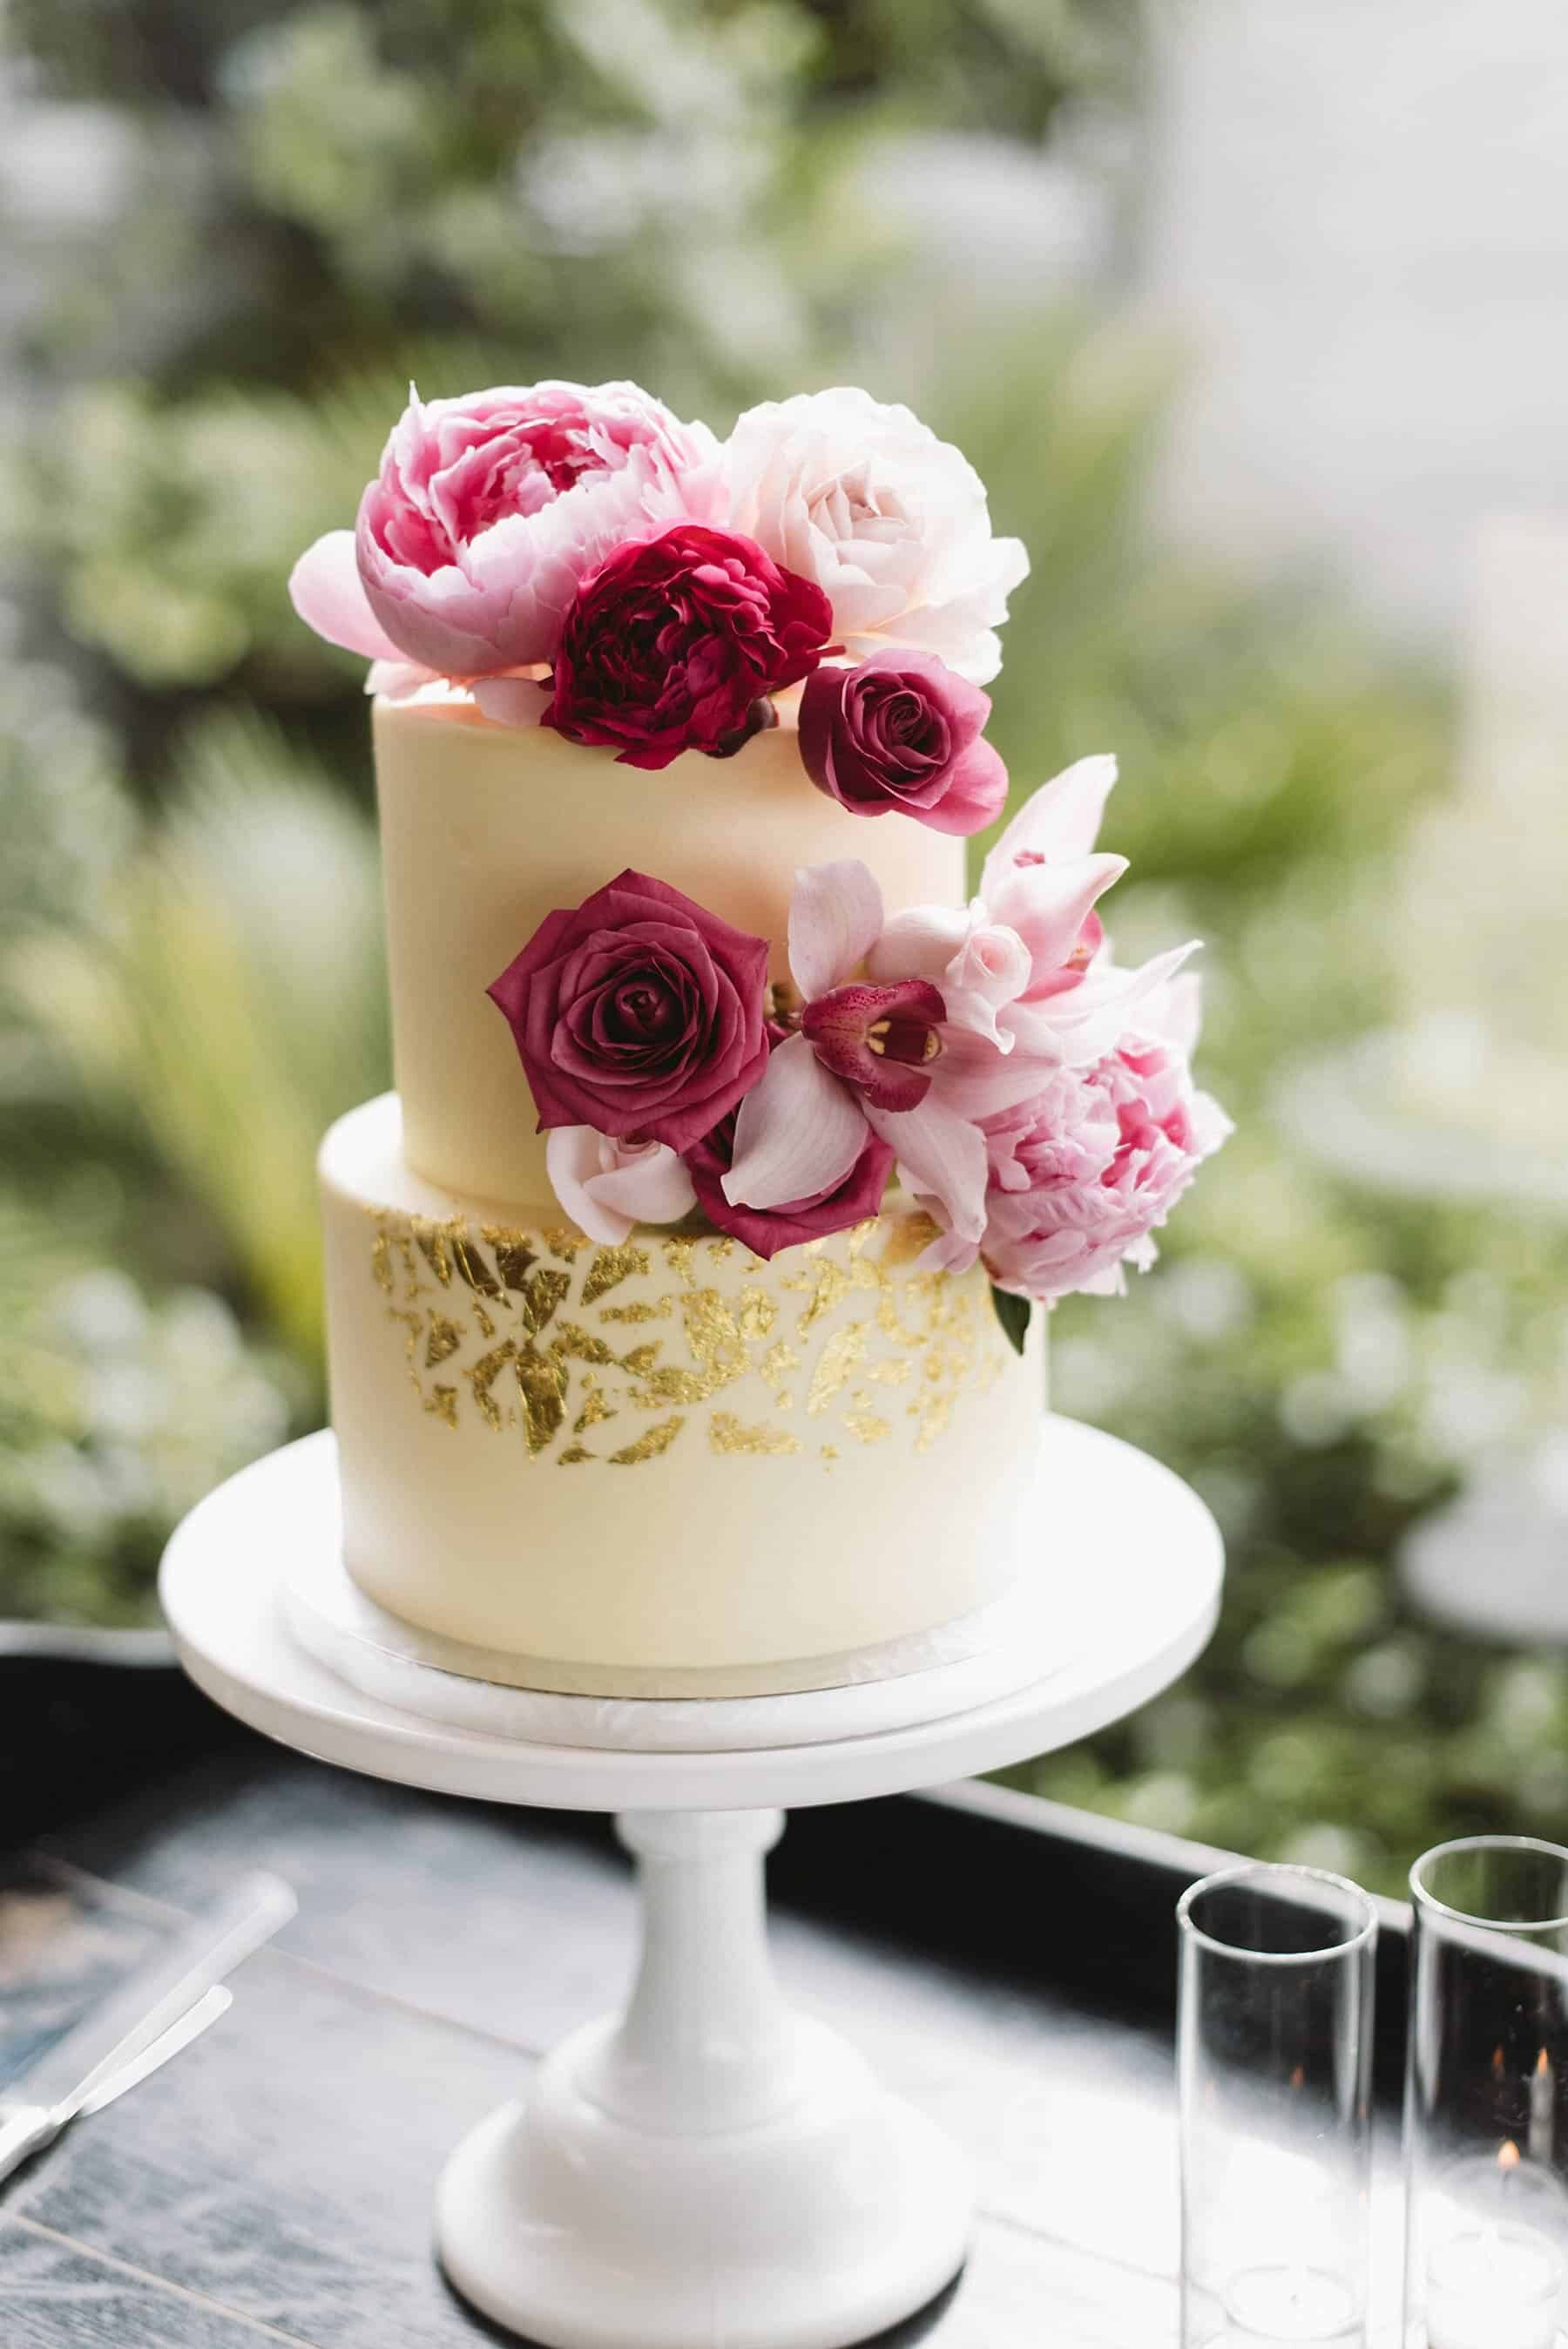 simple white gold-flecked wedding cake with pink flowers